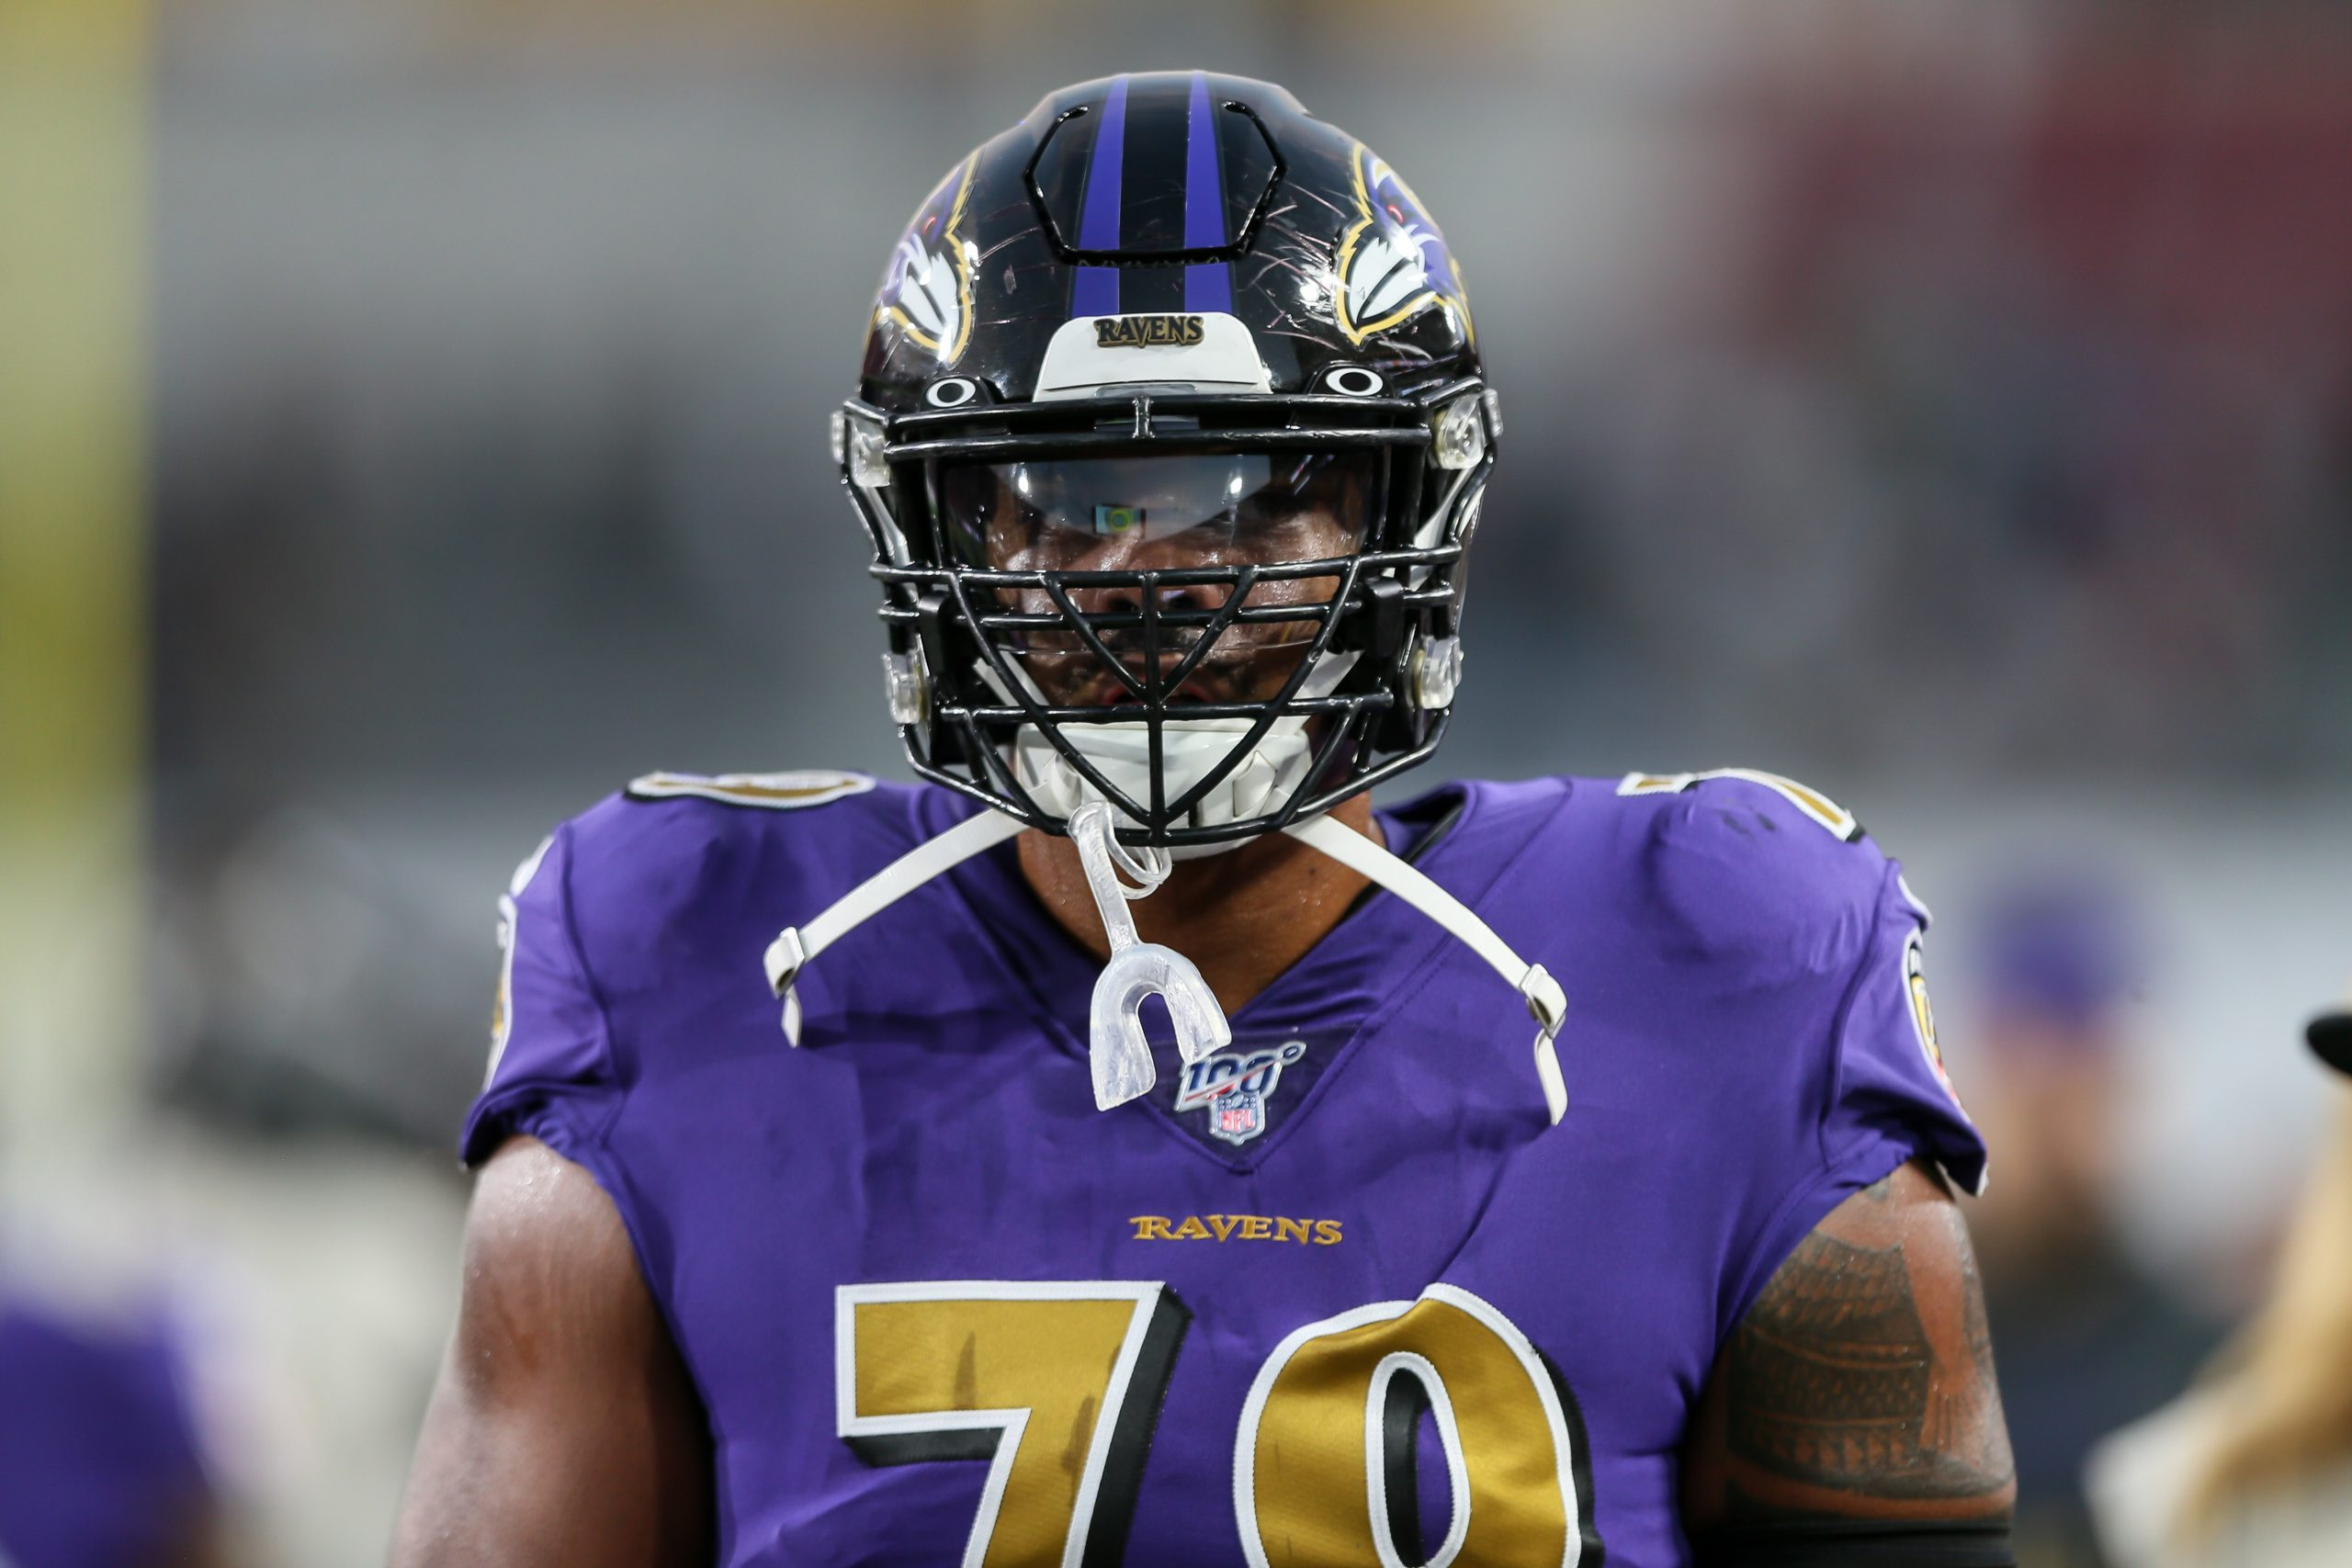 LOS ANGELES, CA - NOVEMBER 25: Baltimore Ravens offensive tackle Ronnie Stanley (79) before the Baltimore Ravens vs Los